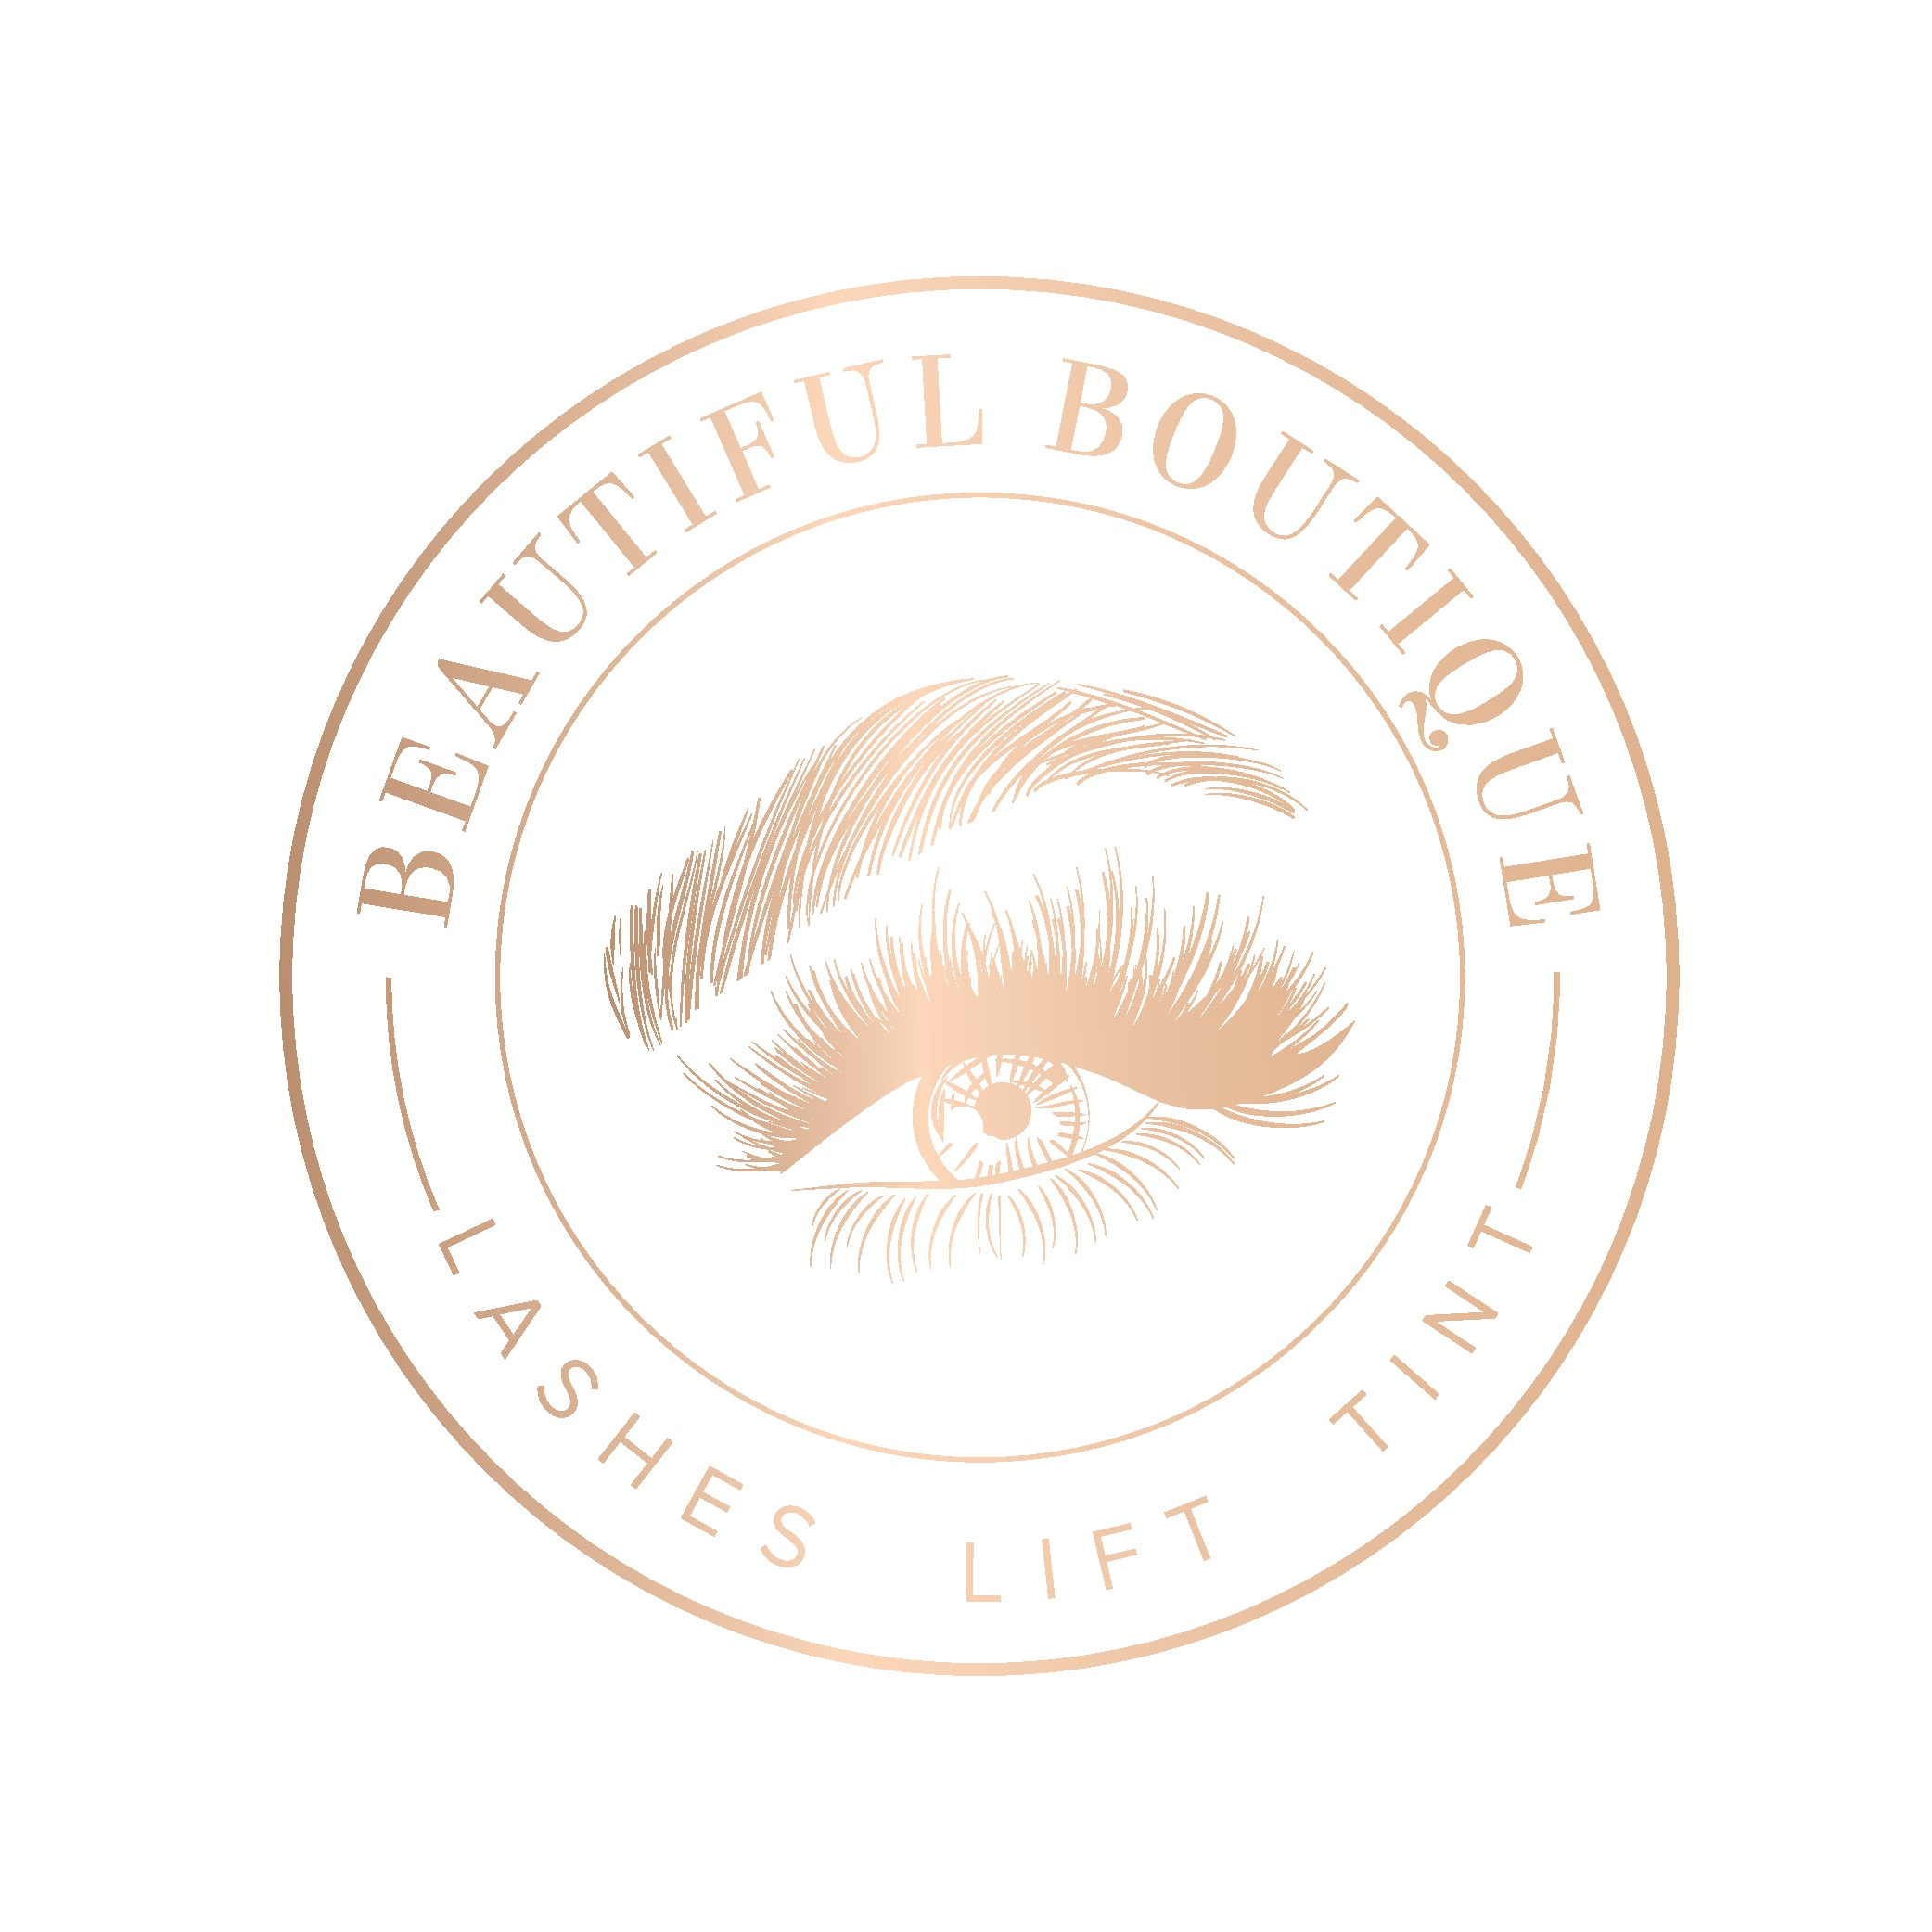 Design a luxurious logo for Beautiful Boutique.